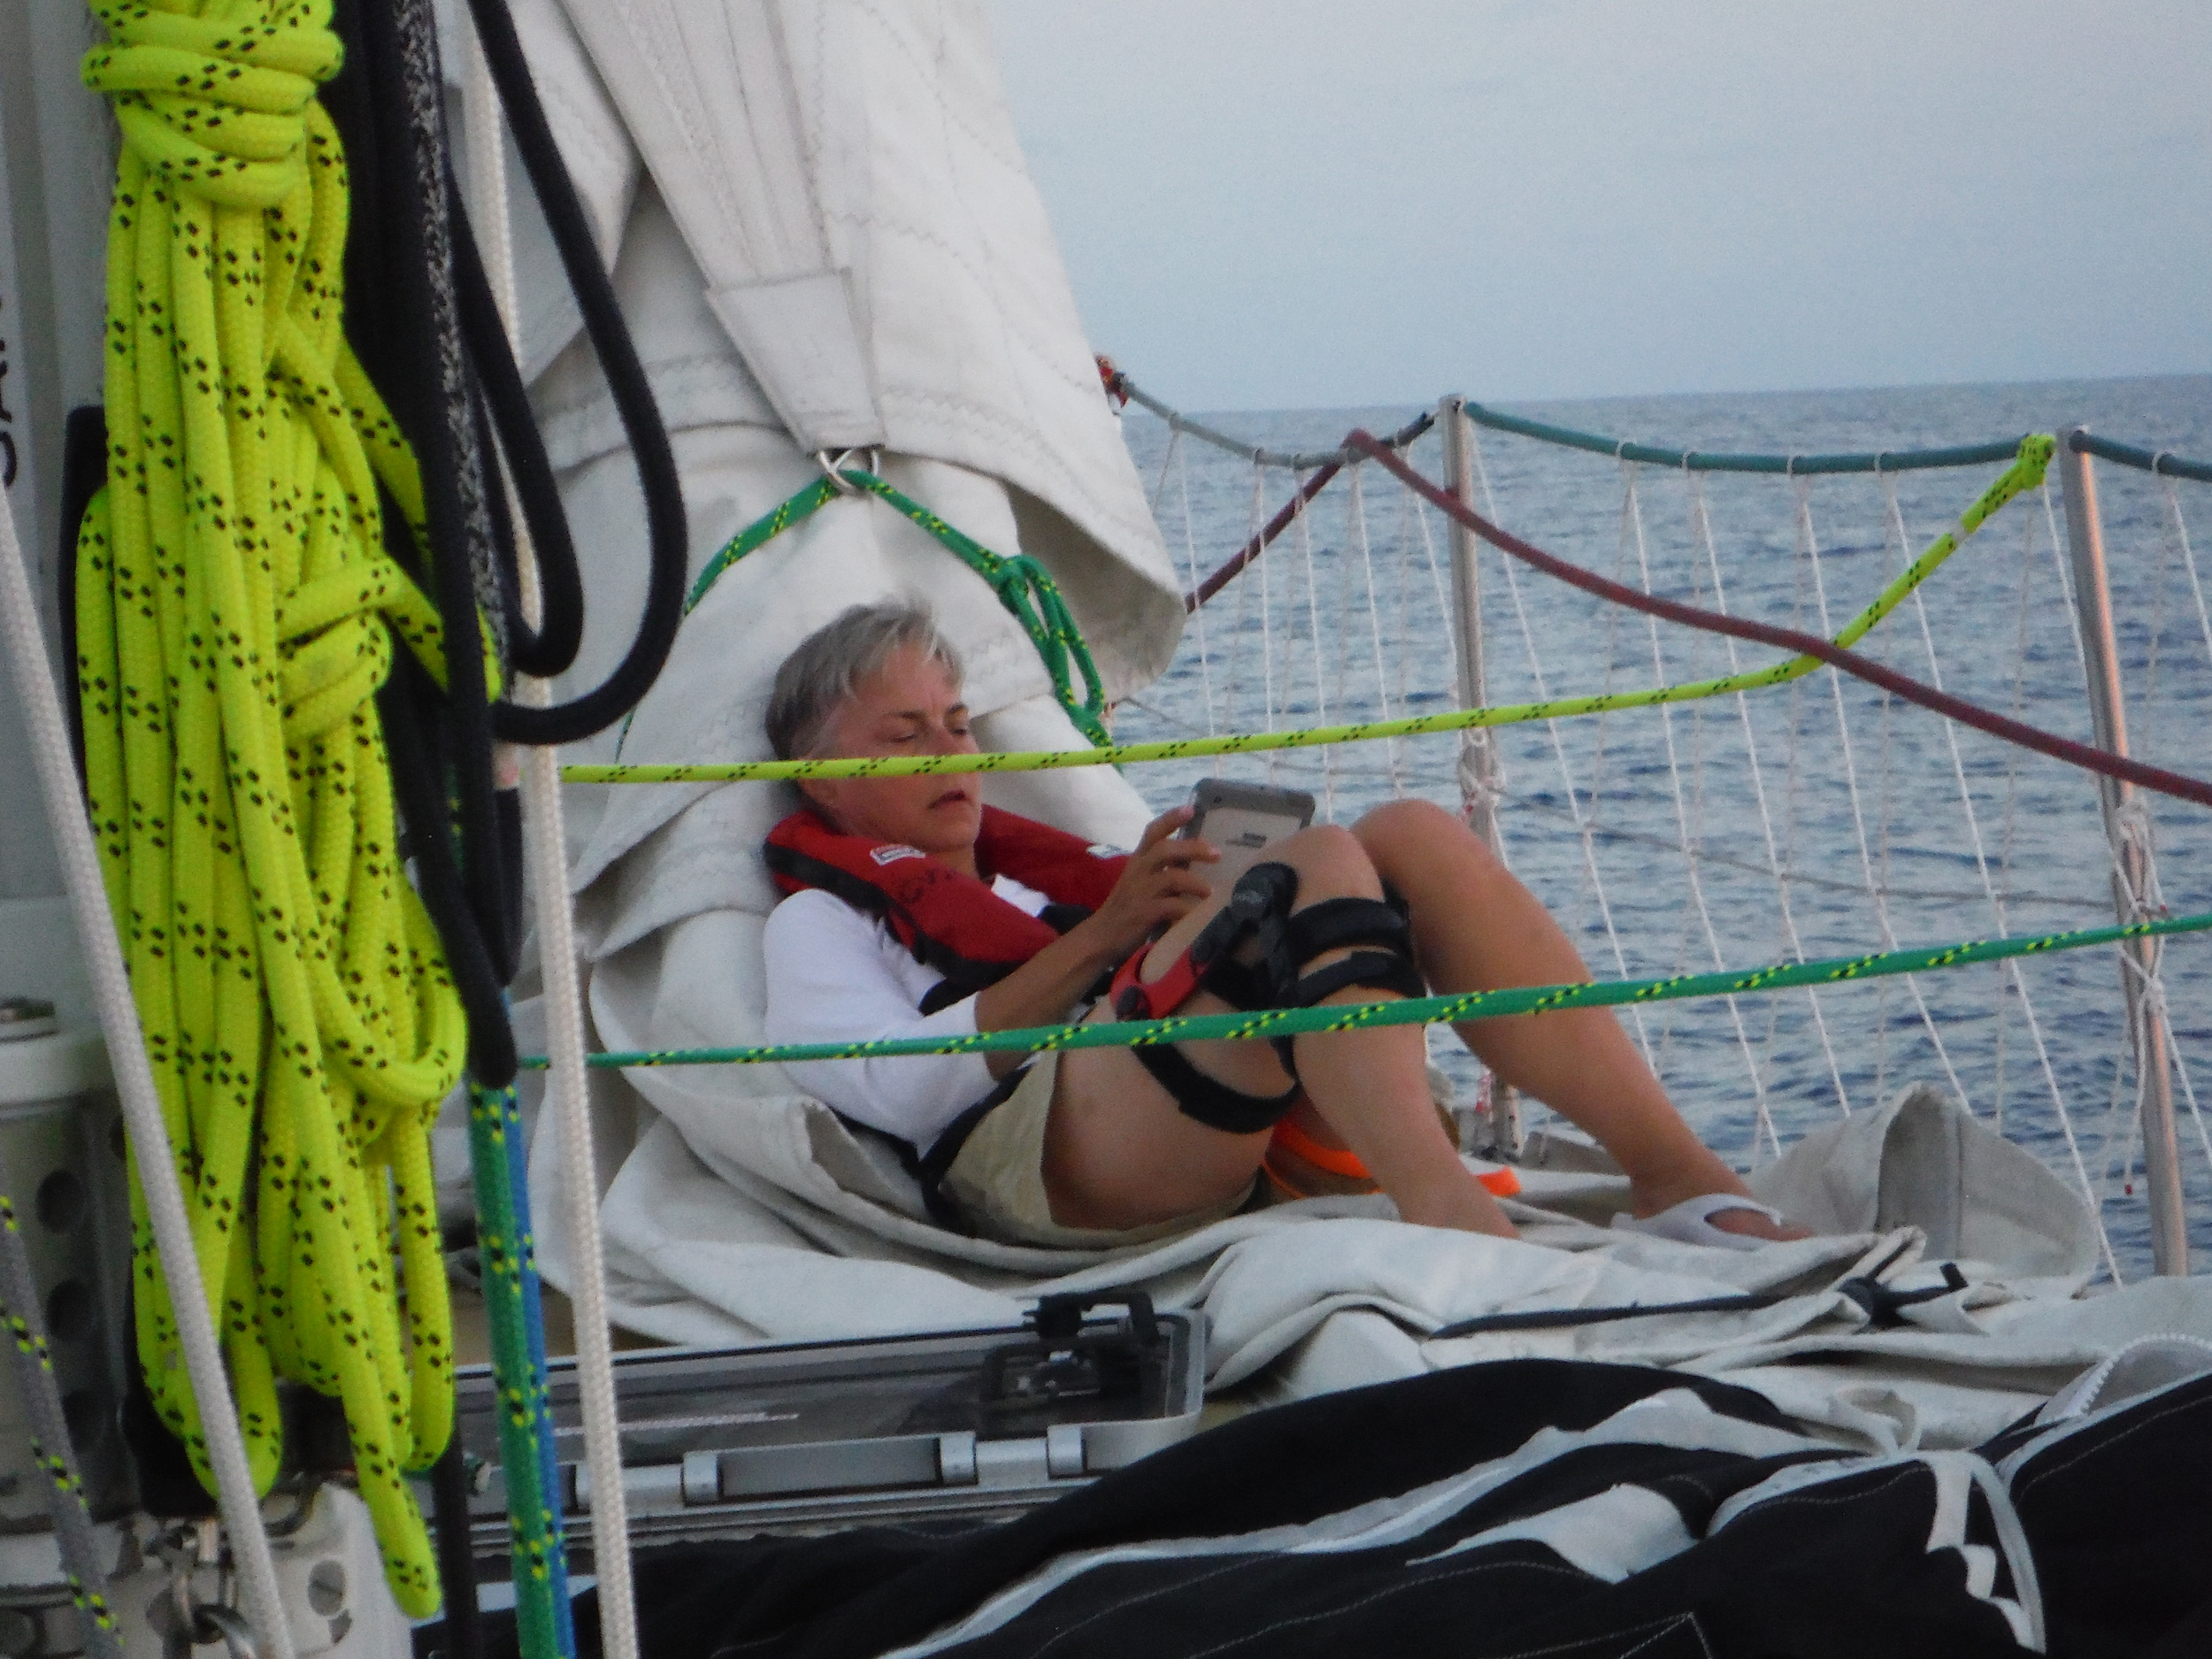 Relaxing on deck while off watch, sitting on the staysail, trying to beat the heat down below. A bit of breeze and cloud cover a welcome relief.